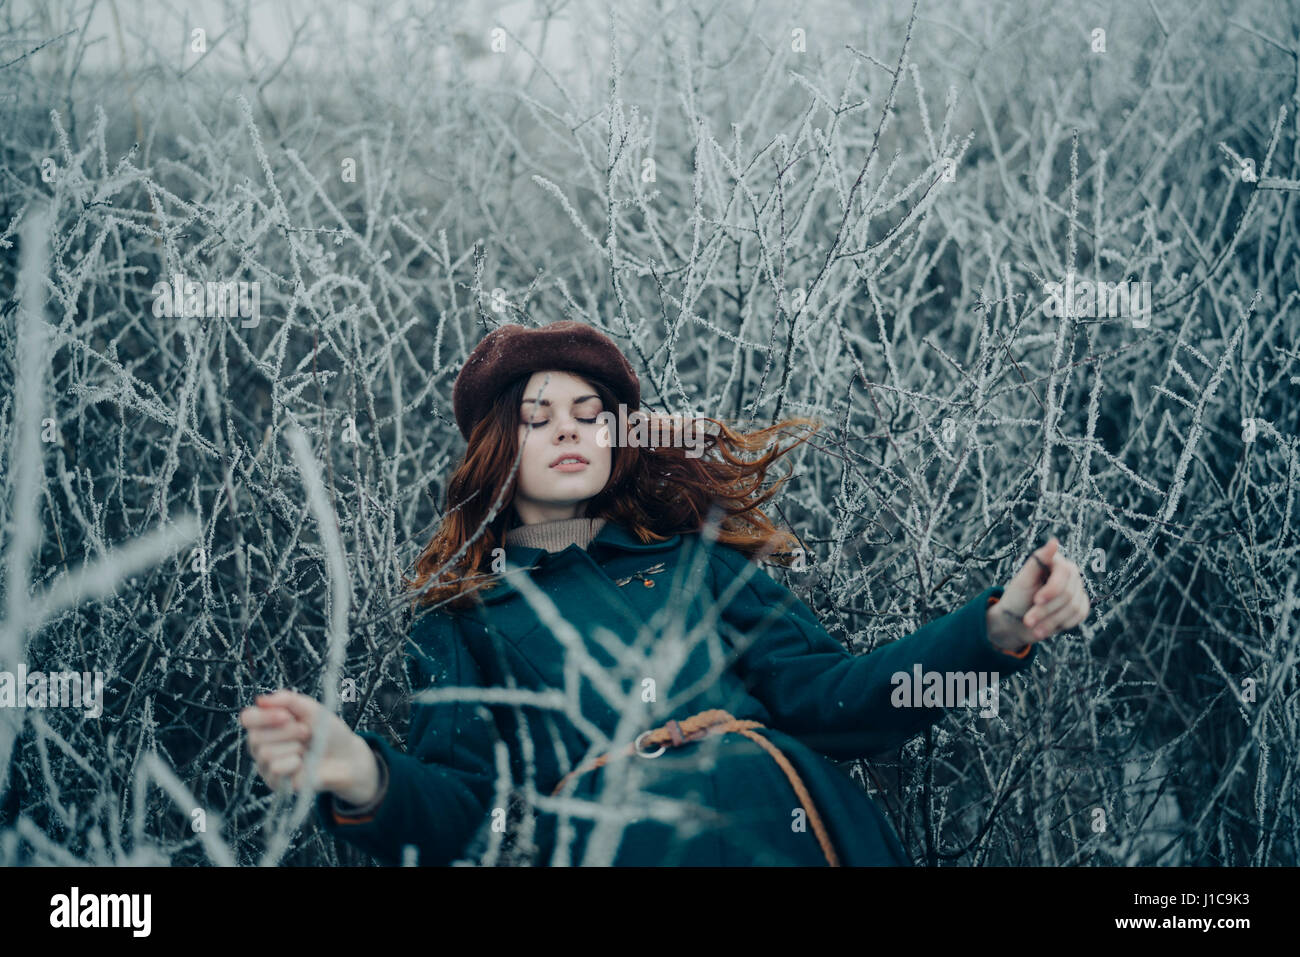 Caucasian woman laying on branches in winter field - Stock Image